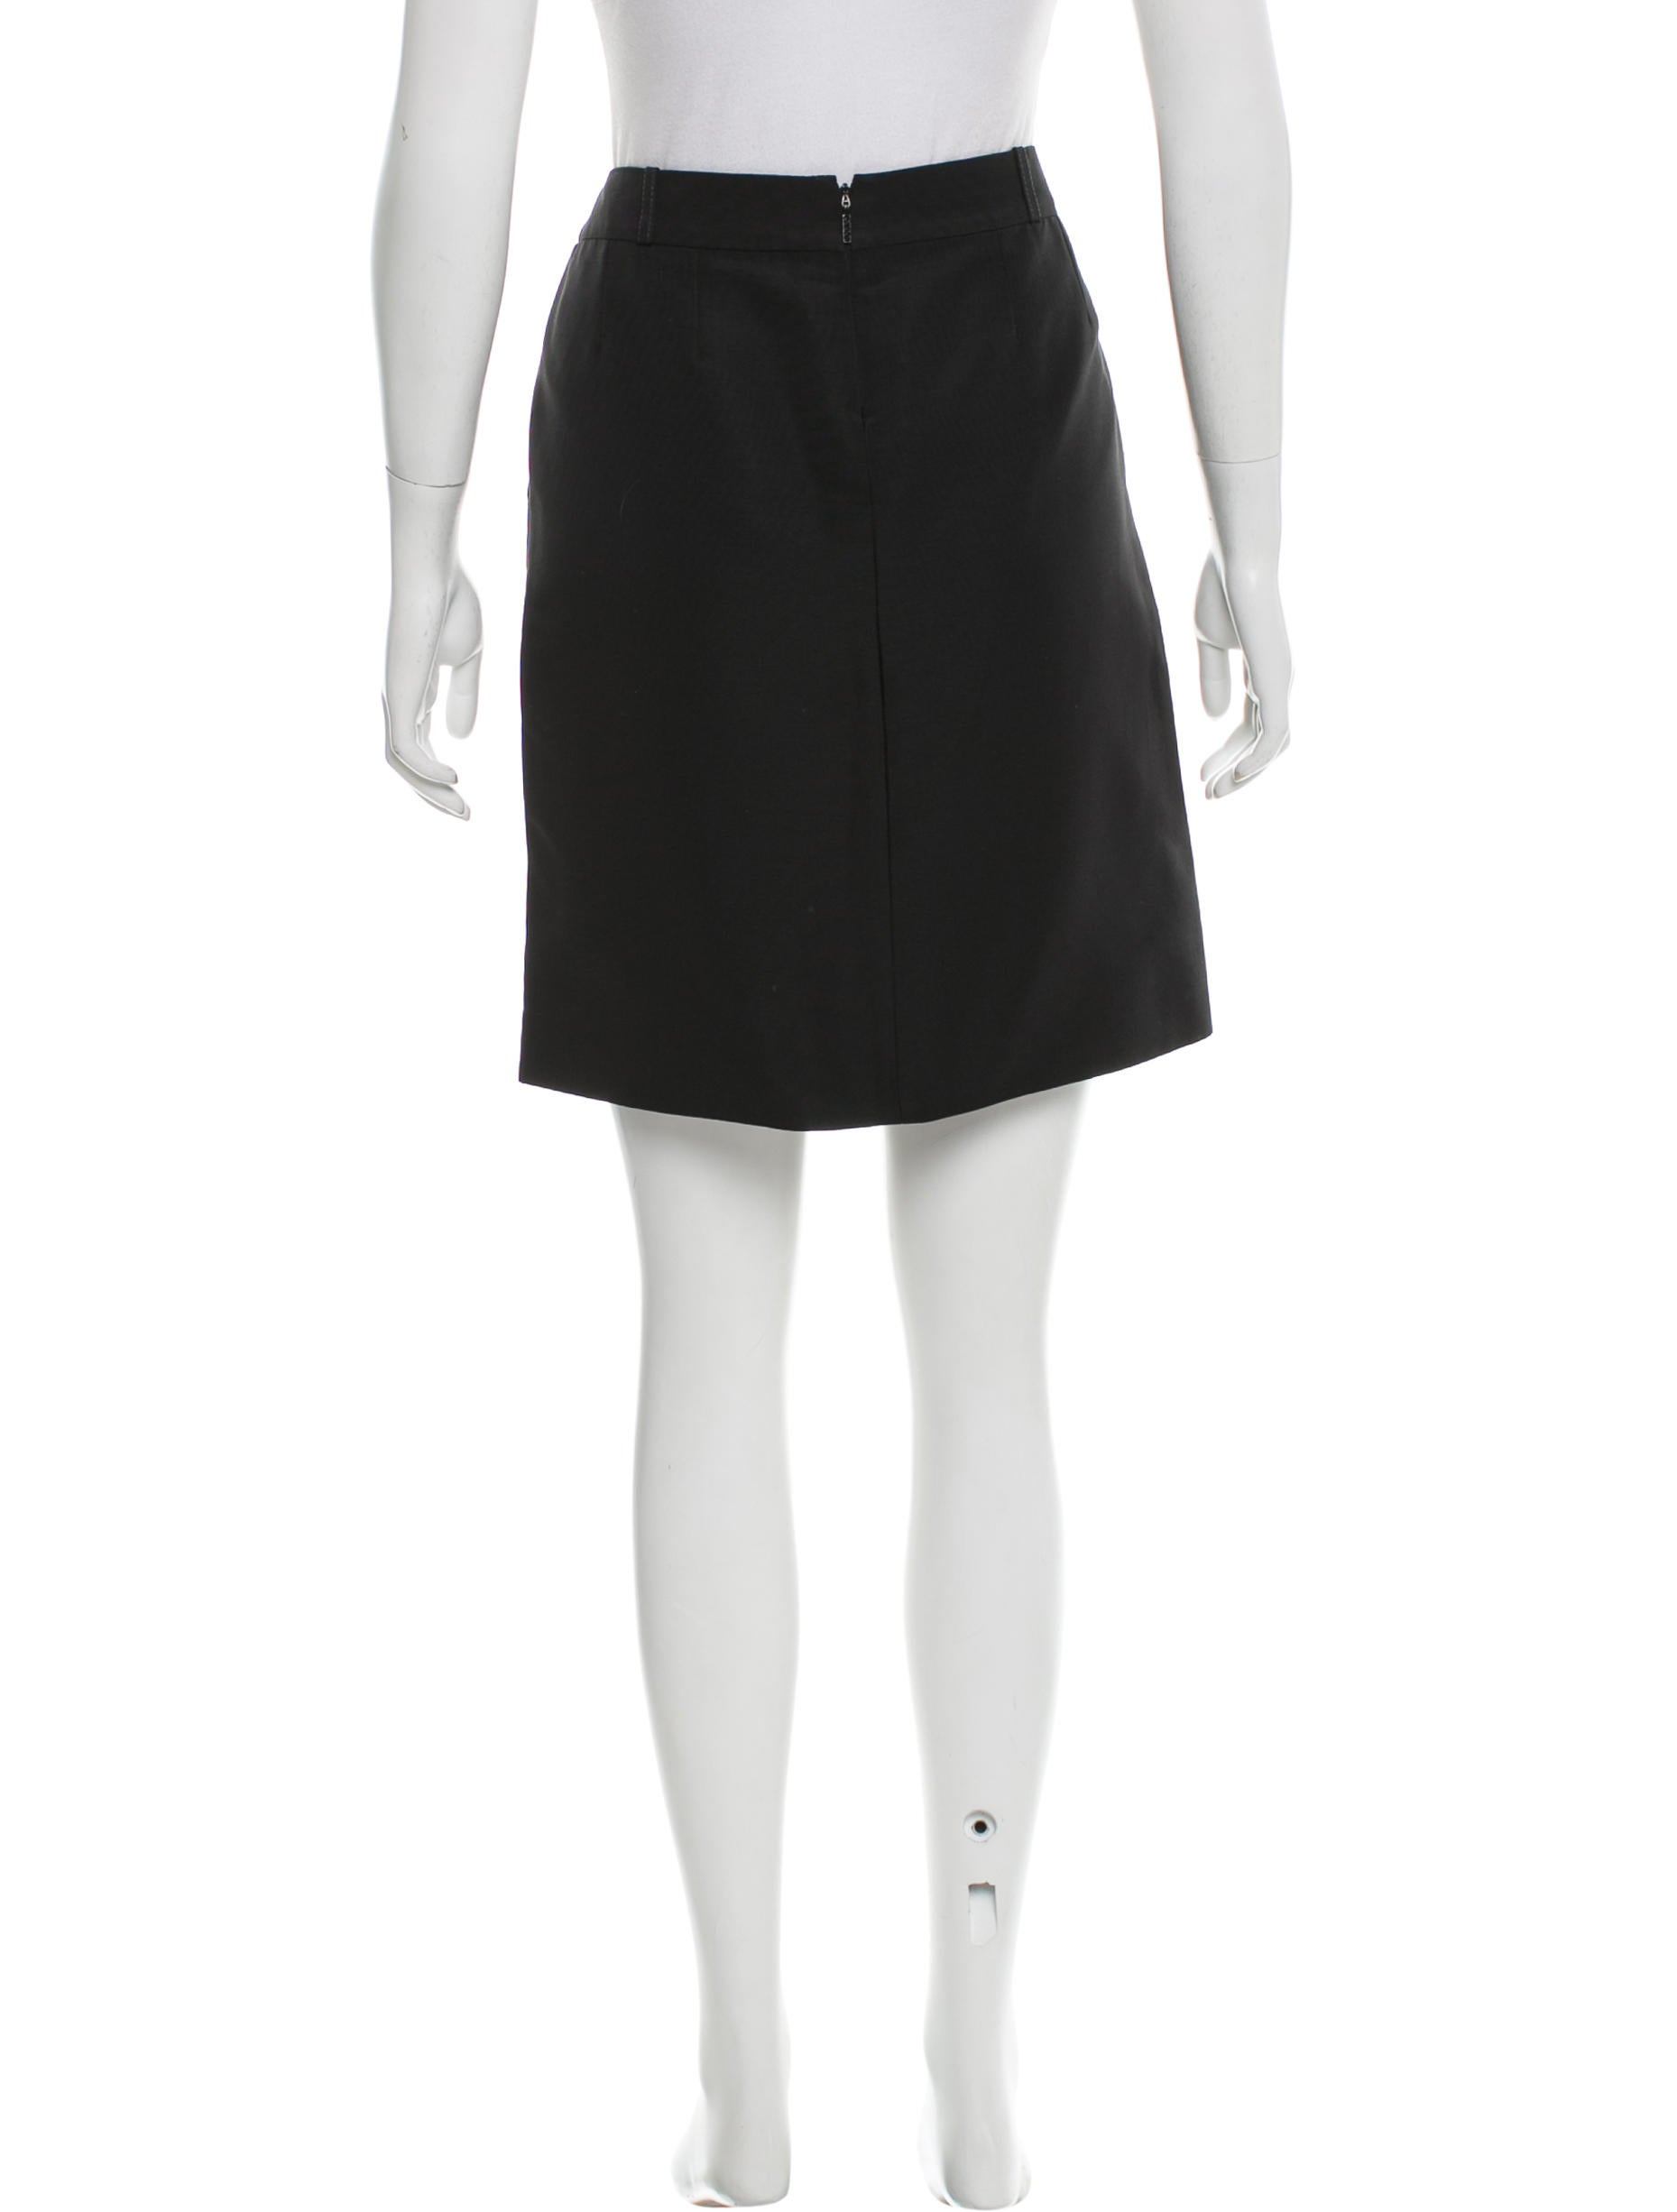 Gucci Embellished Mini Skirt - Clothing - GUC144894 | The RealReal